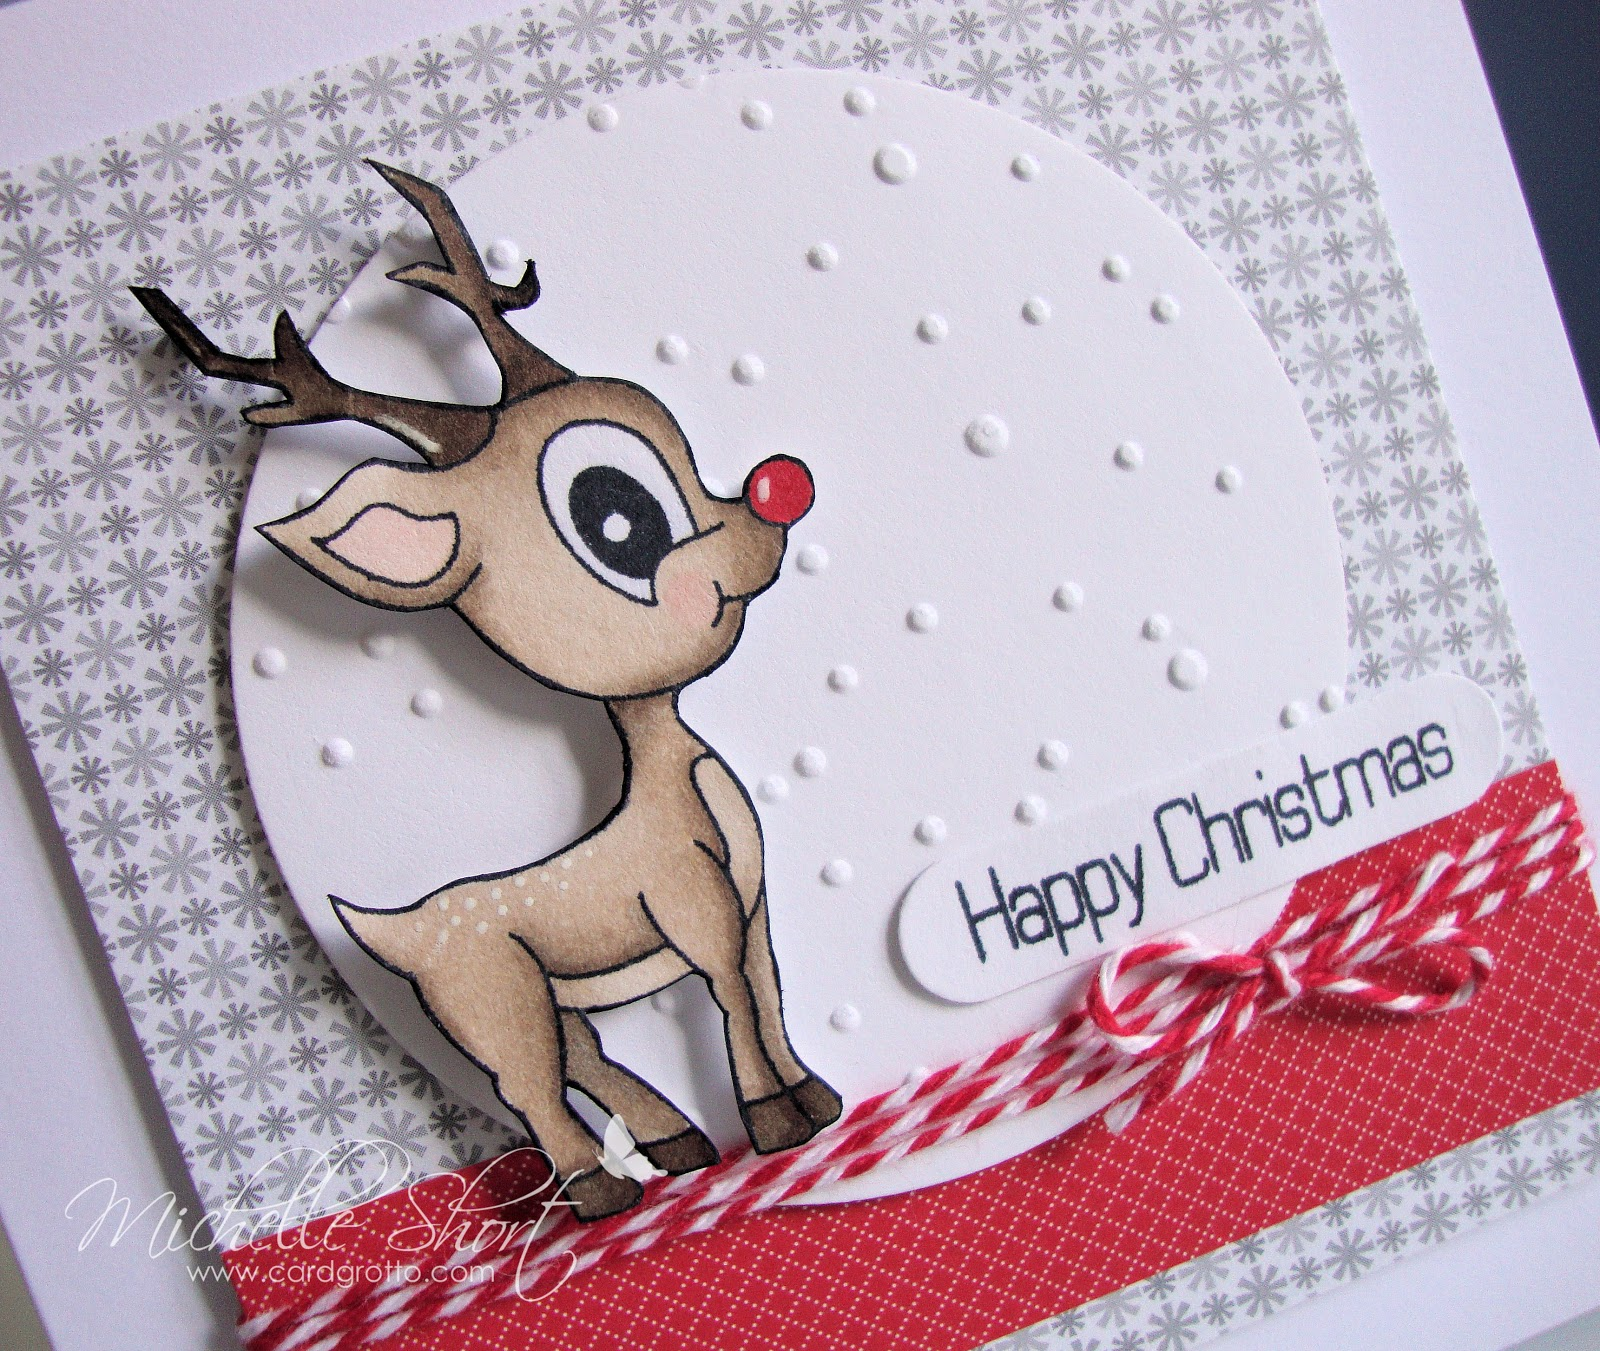 The Card Grotto: The Cutest Reindeer In Town